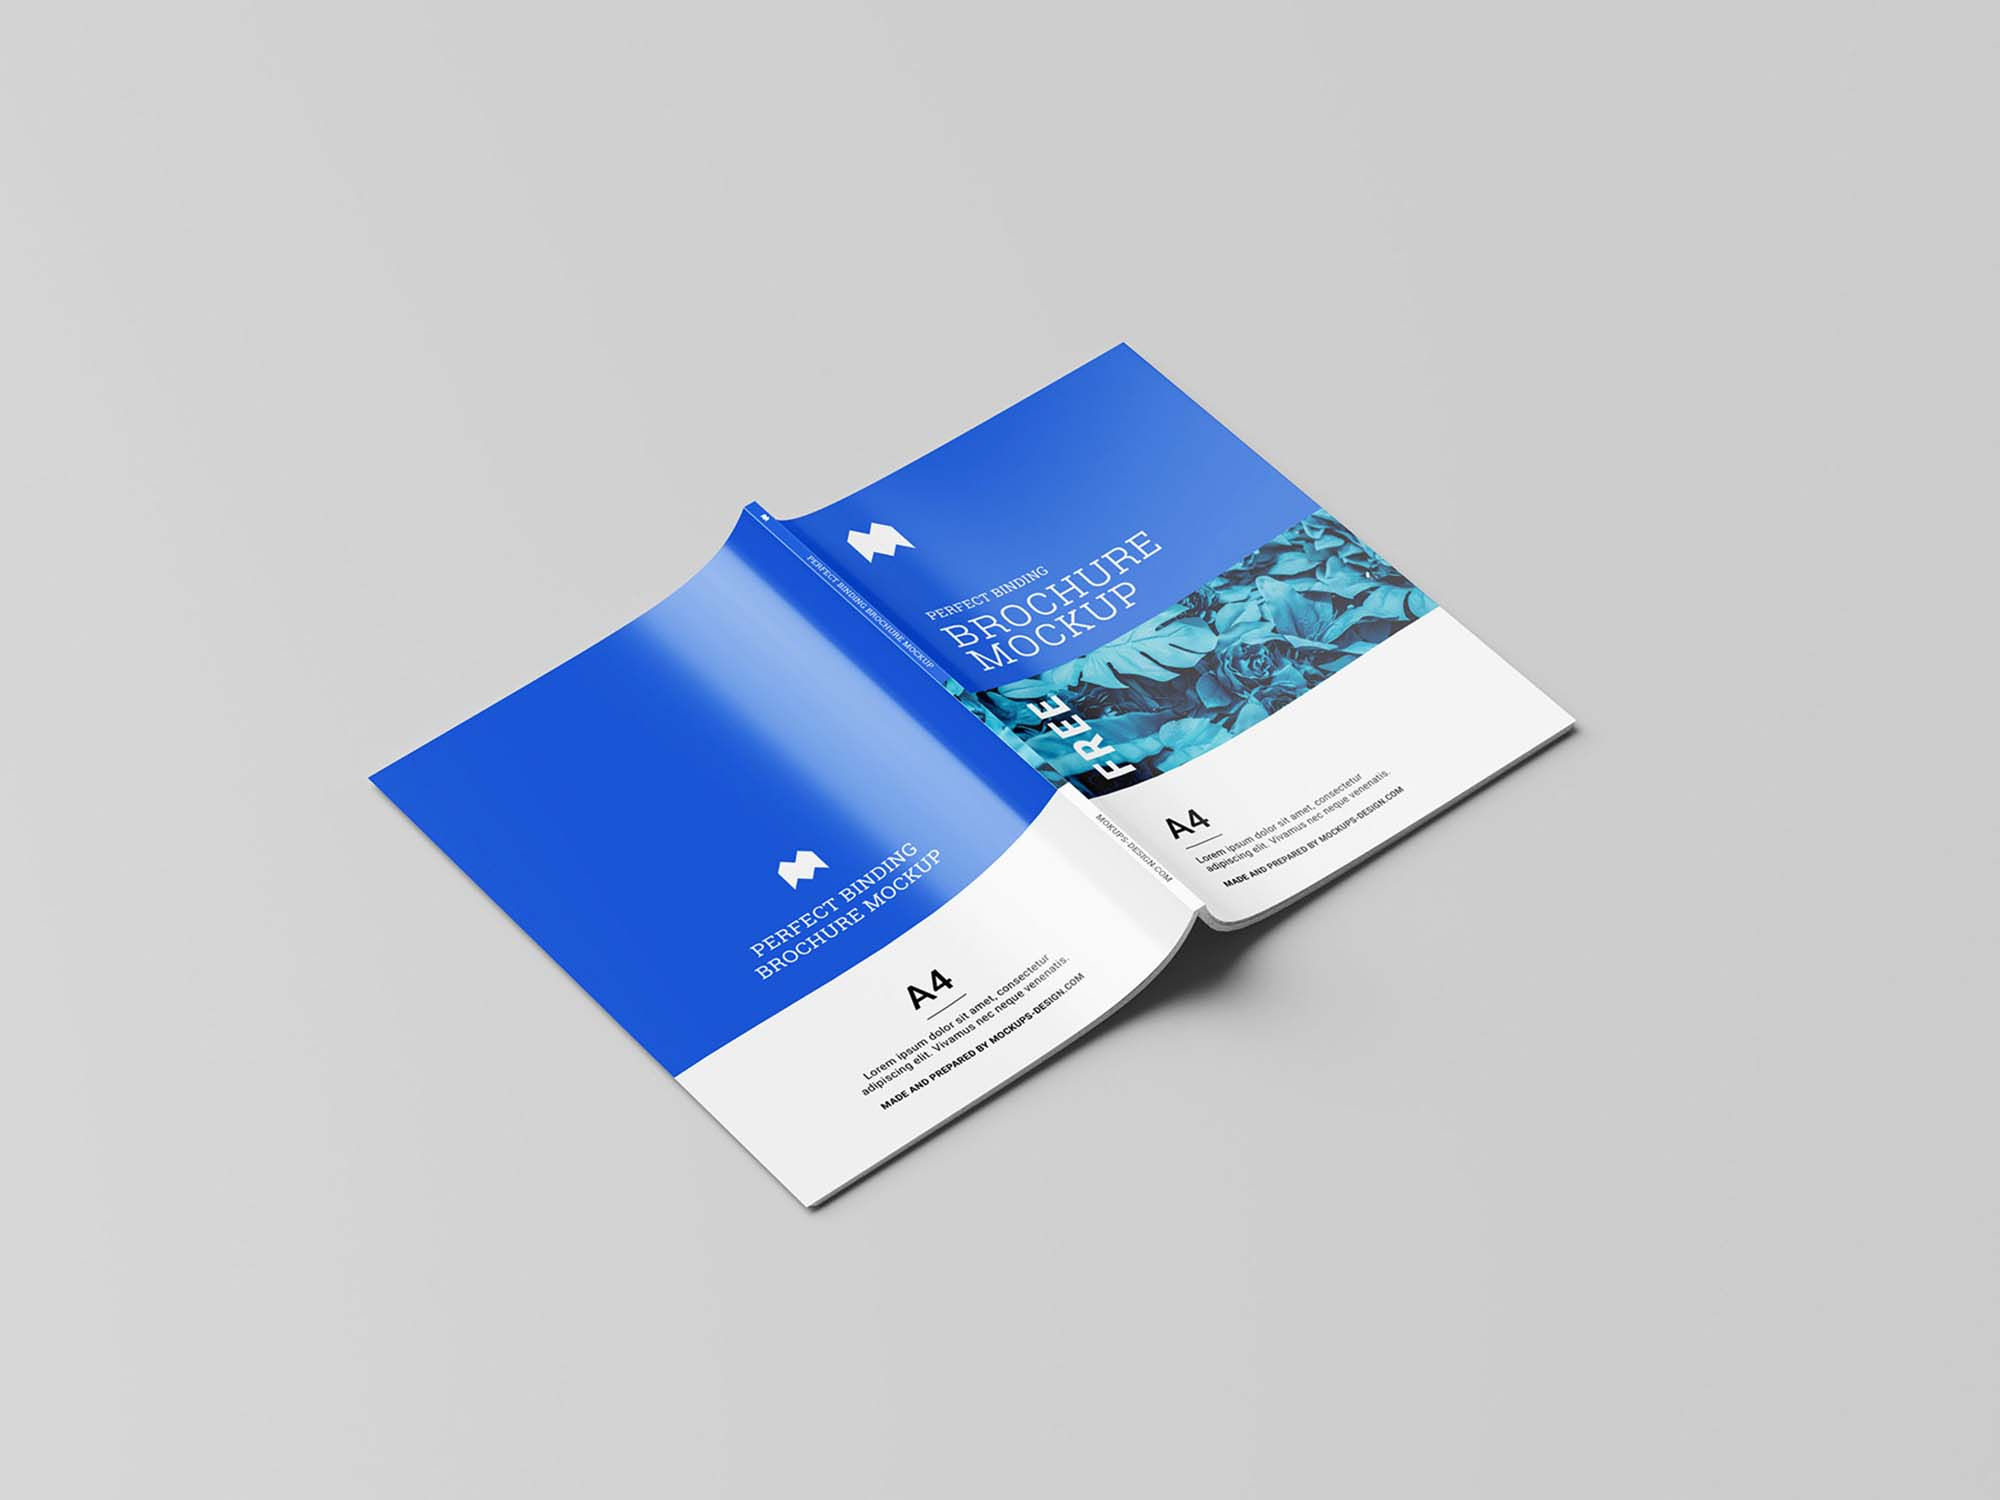 Perfect Binding Brochure Mockup 6